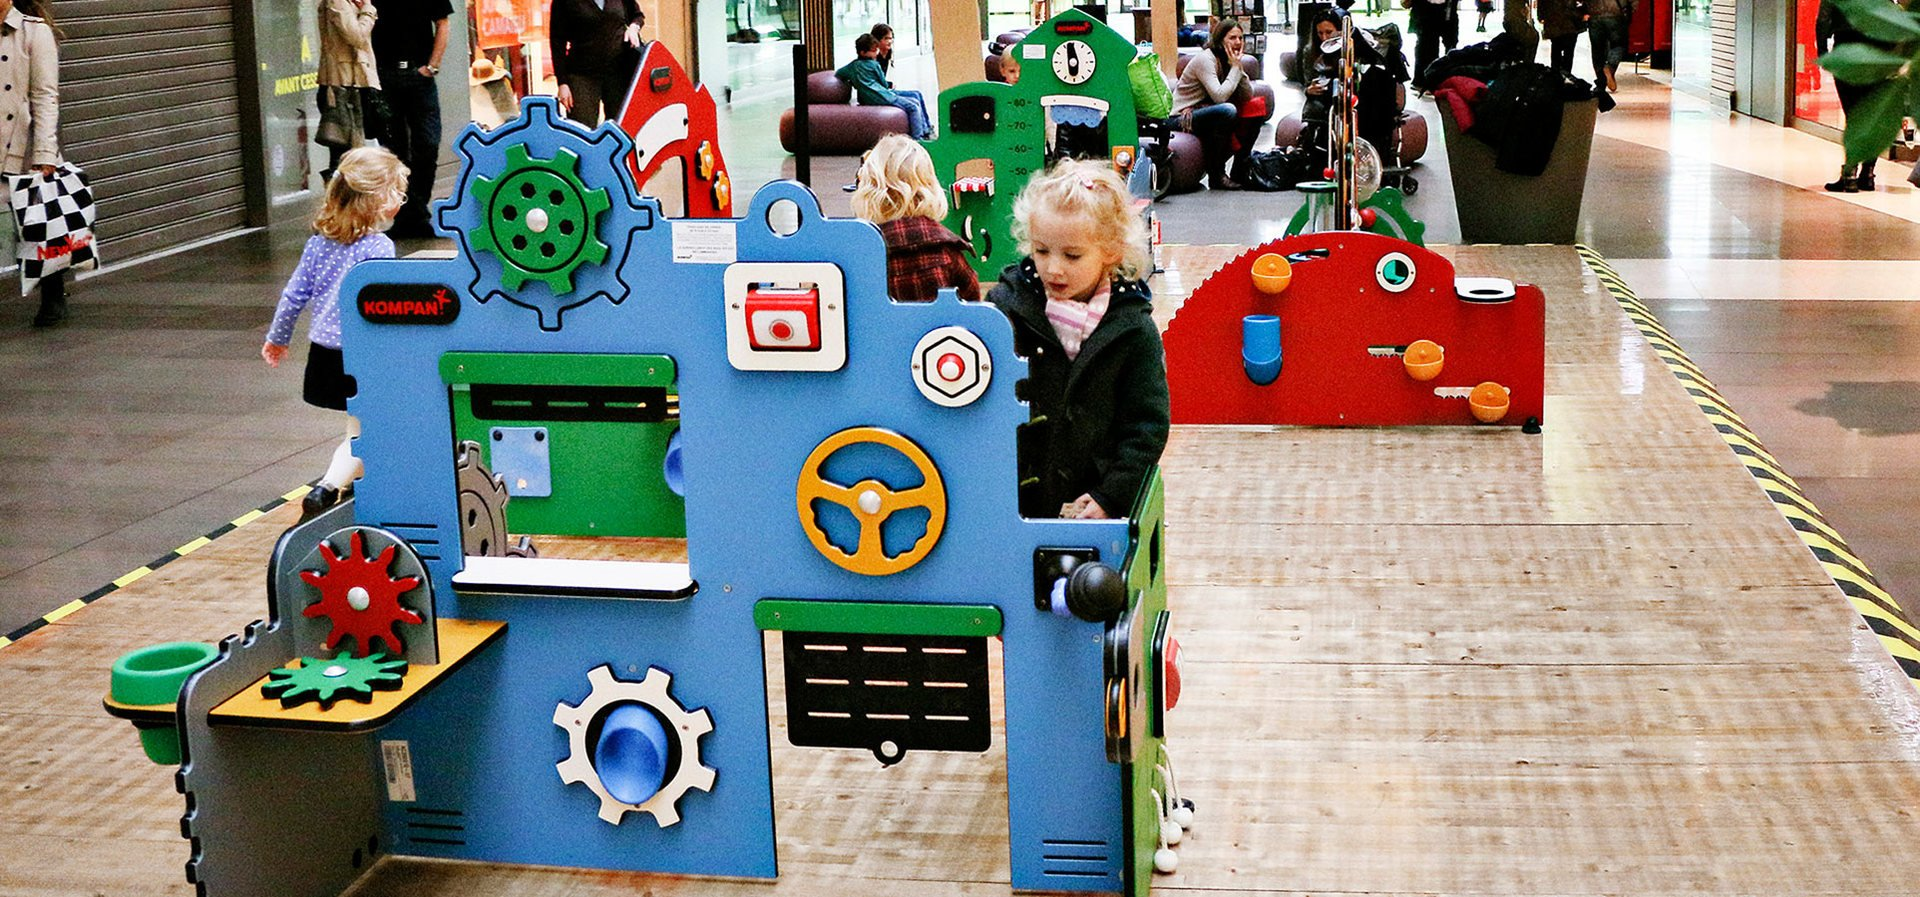 Themed play stations for play and learning